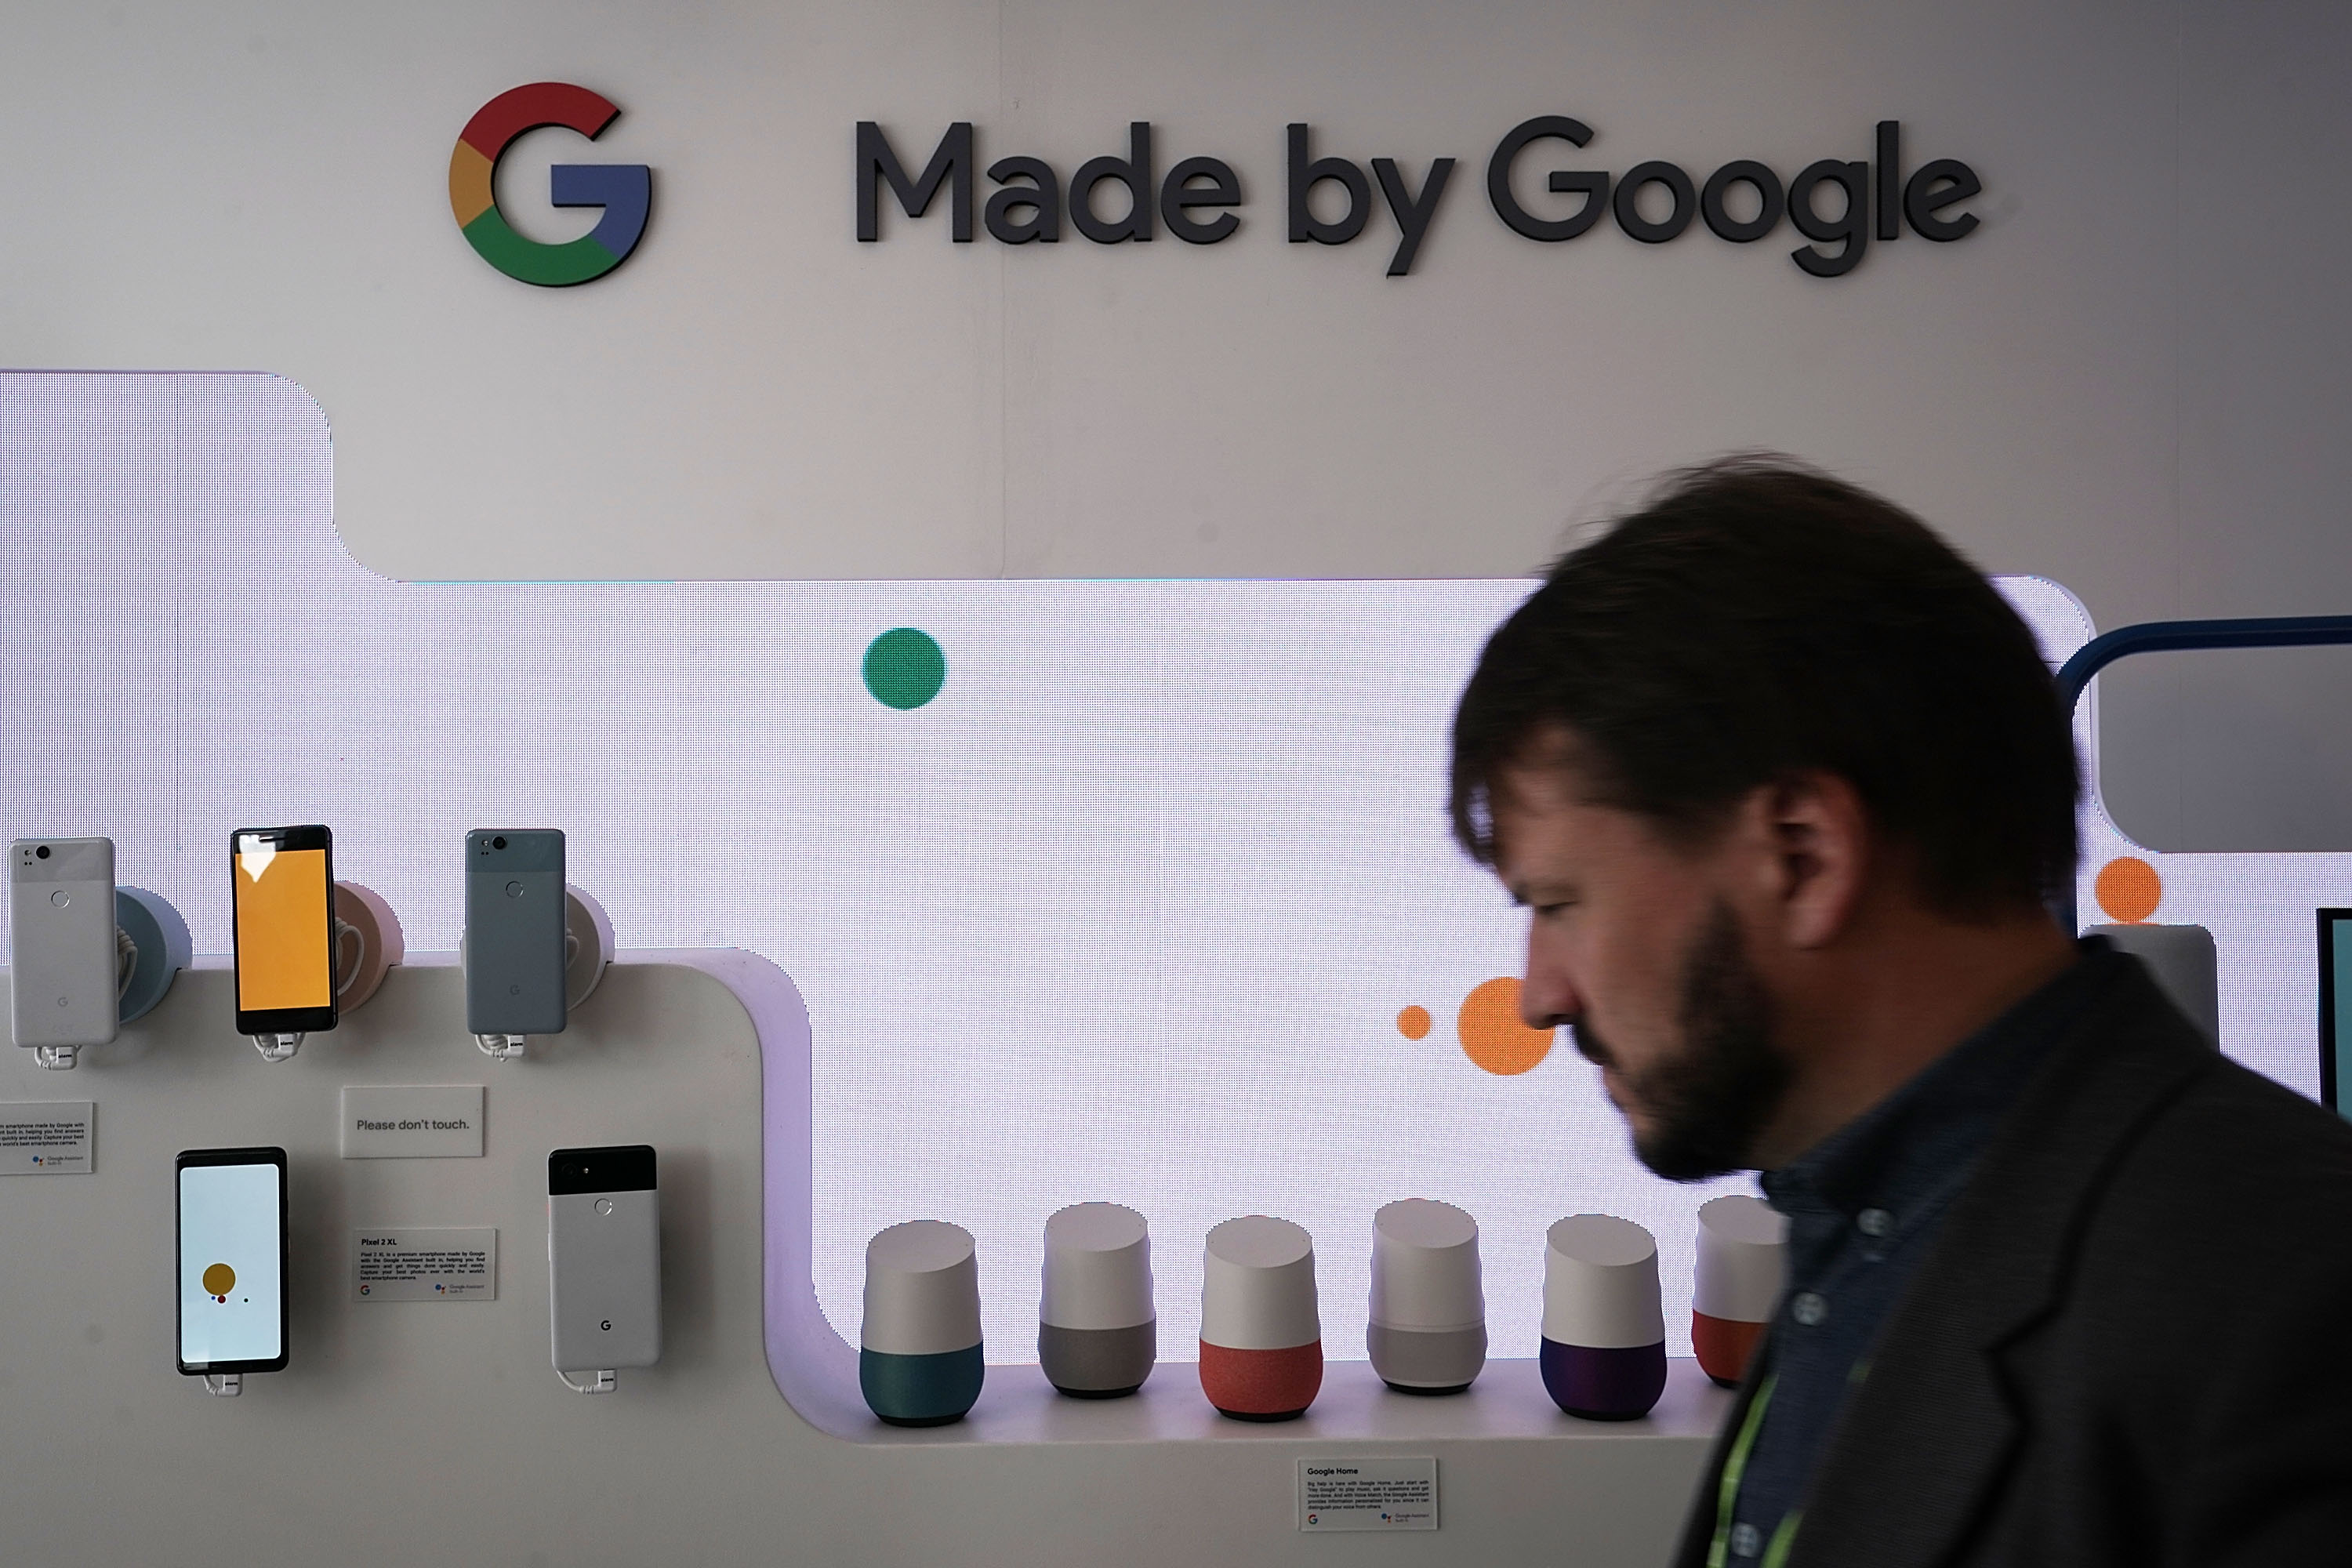 """A man looks at a display of phones and voice assistants """"Made by Google."""""""